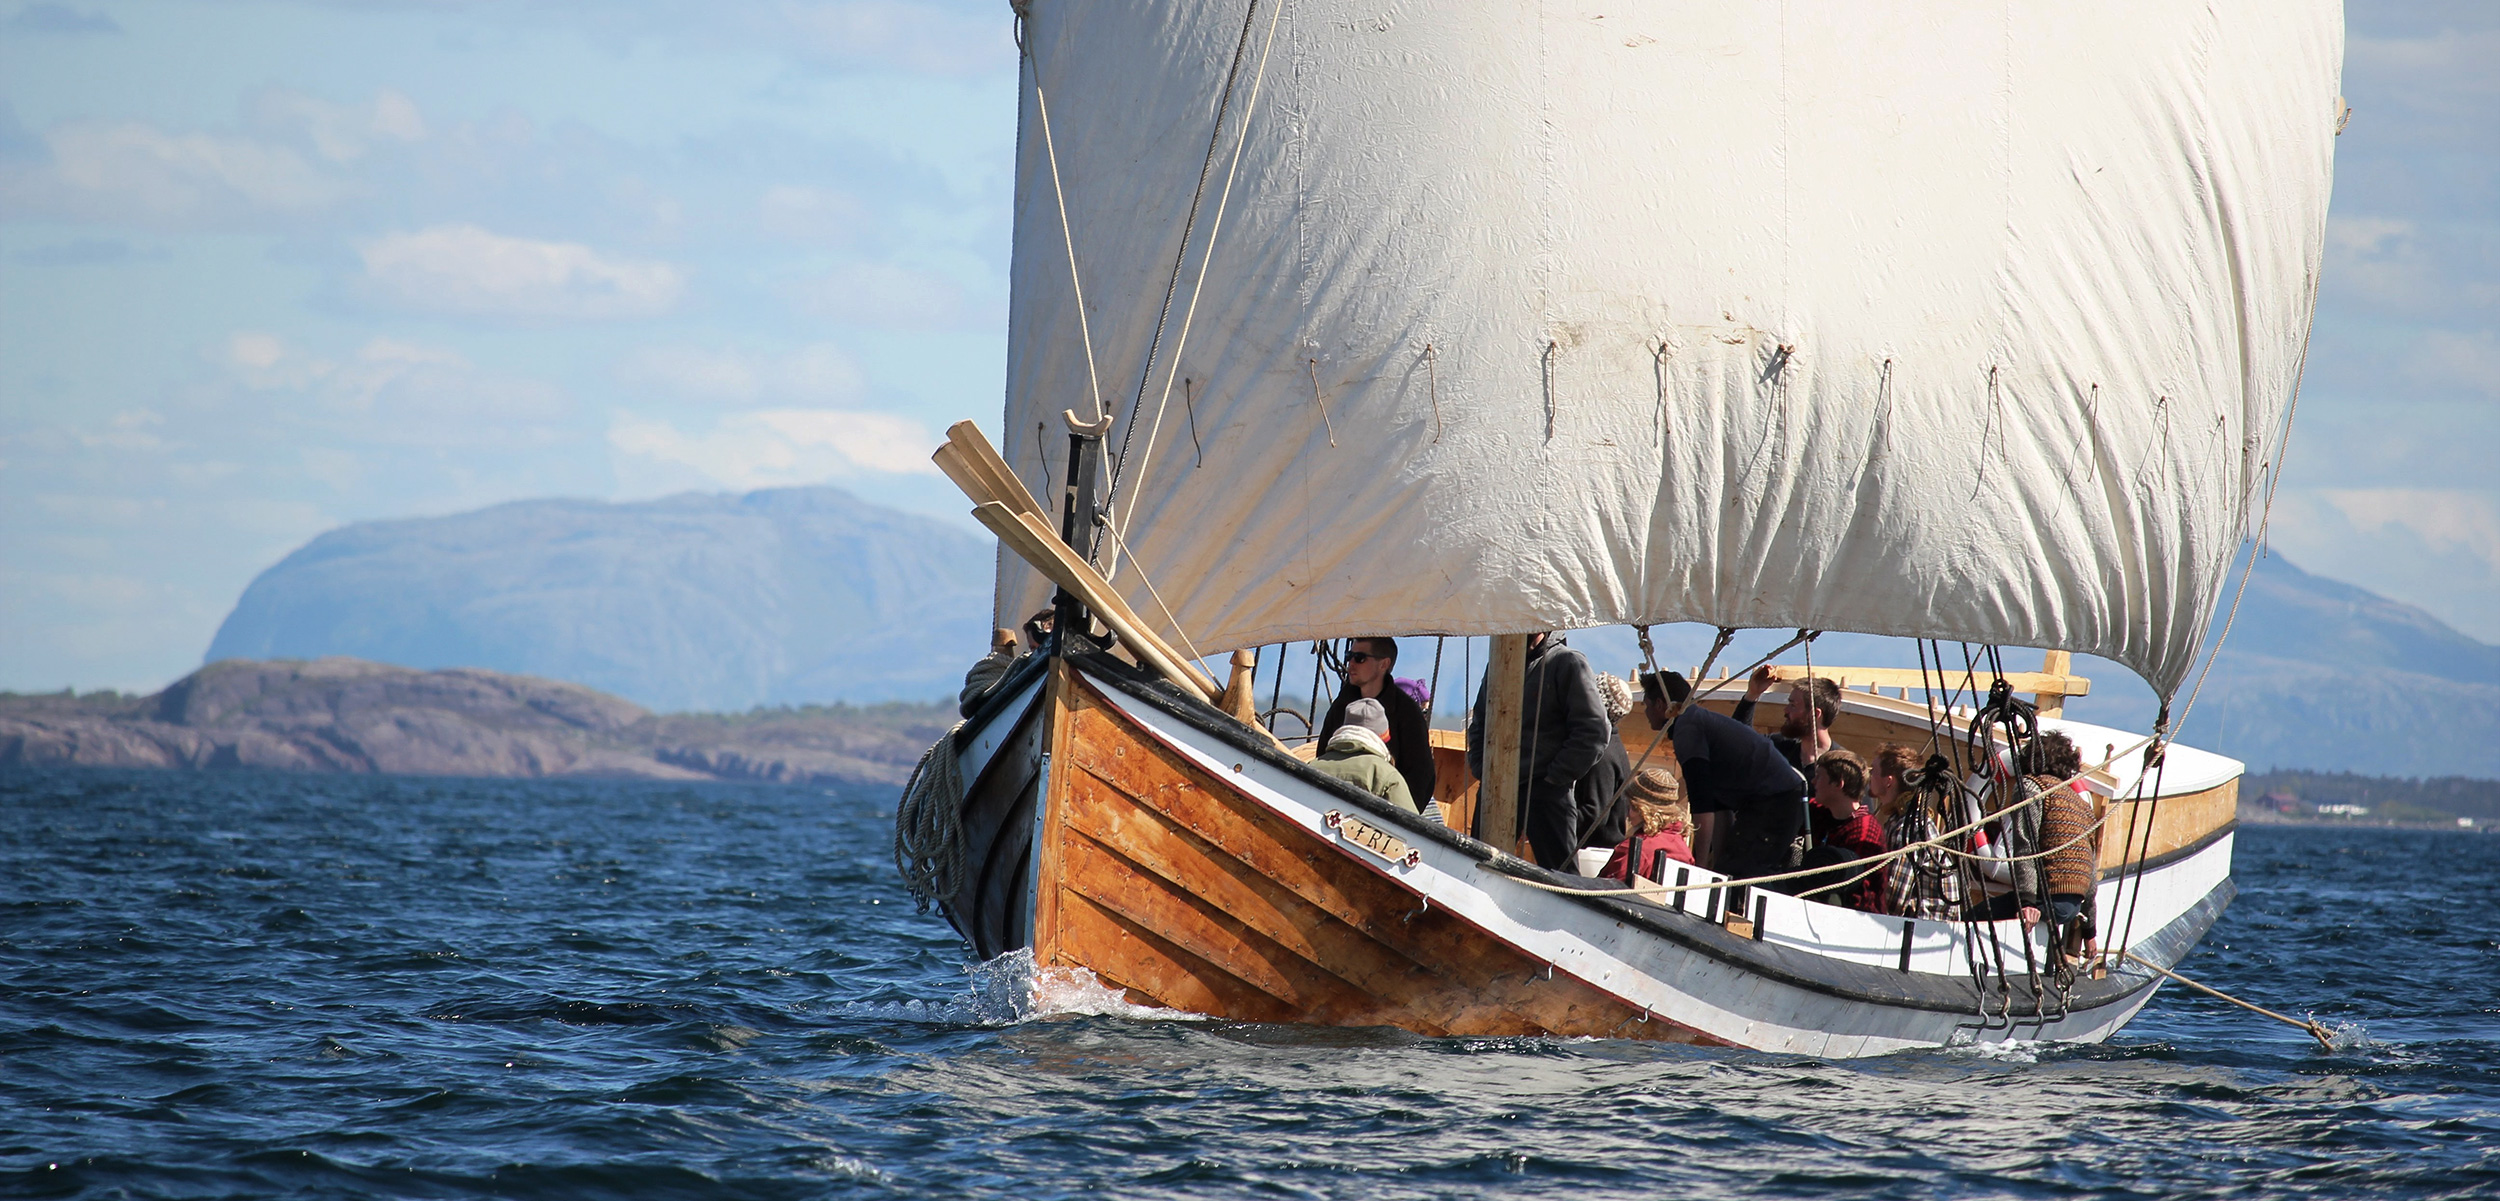 Fosen Folk High School students sailing a square-sail-rigged boat in the Trondheim Fjord. Square sails were the norm in Viking days. Photo by Claire Eamer